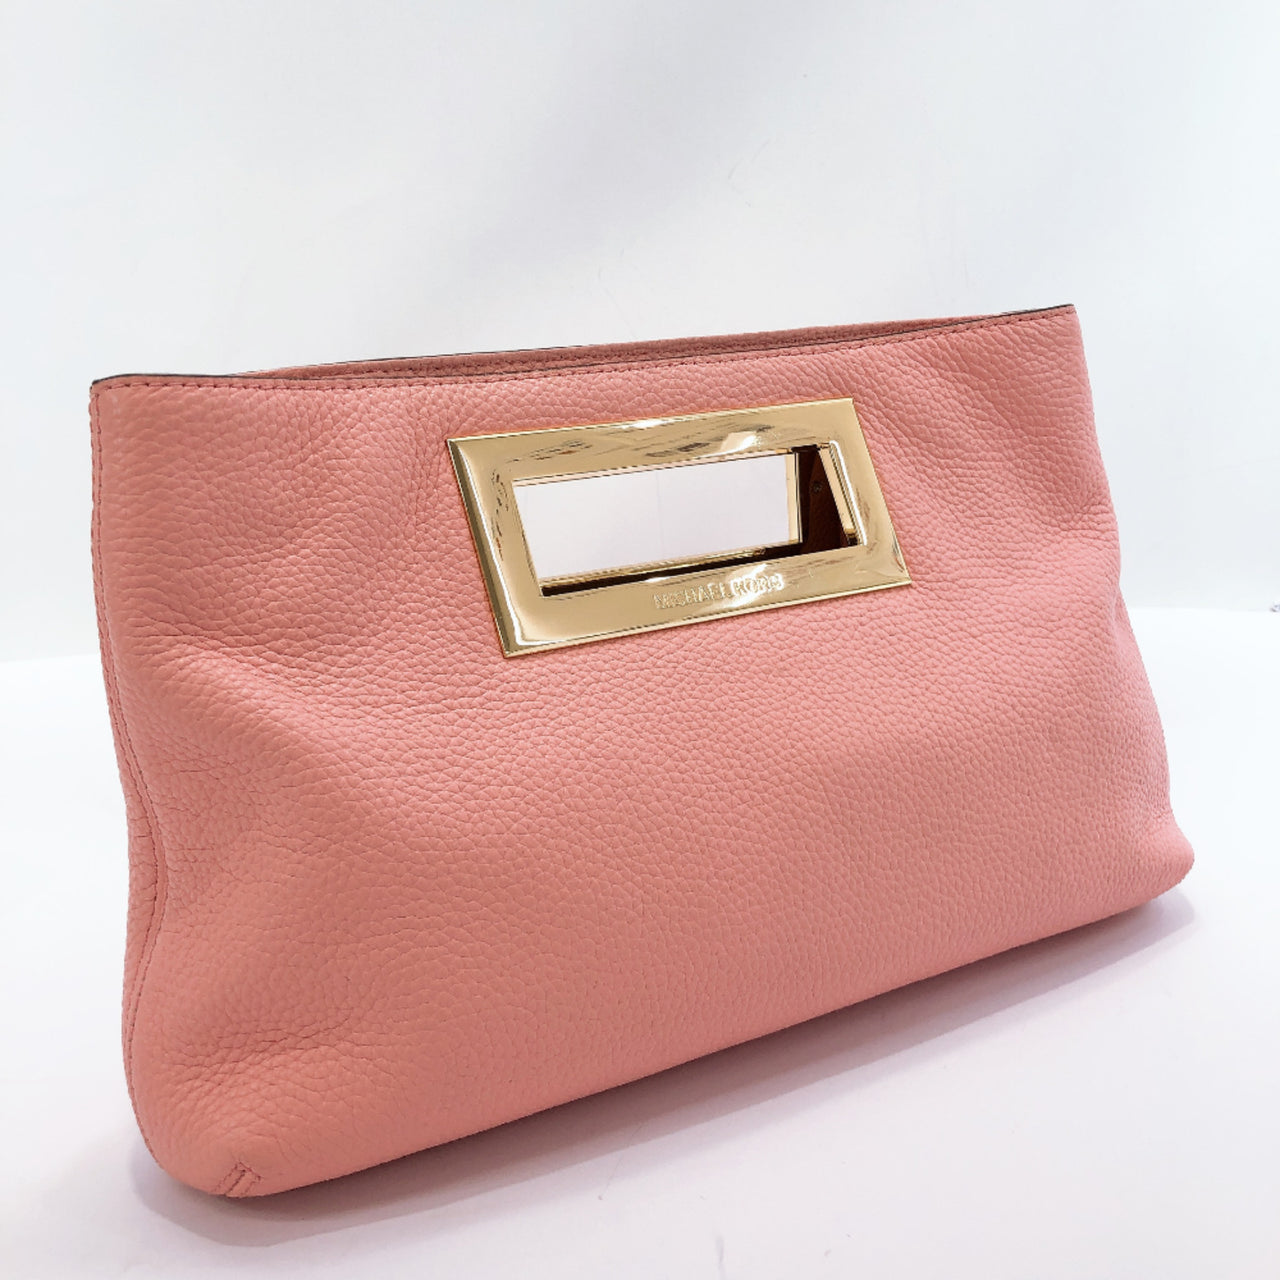 Michael Kors Clutch bag leather pink gold Women Used